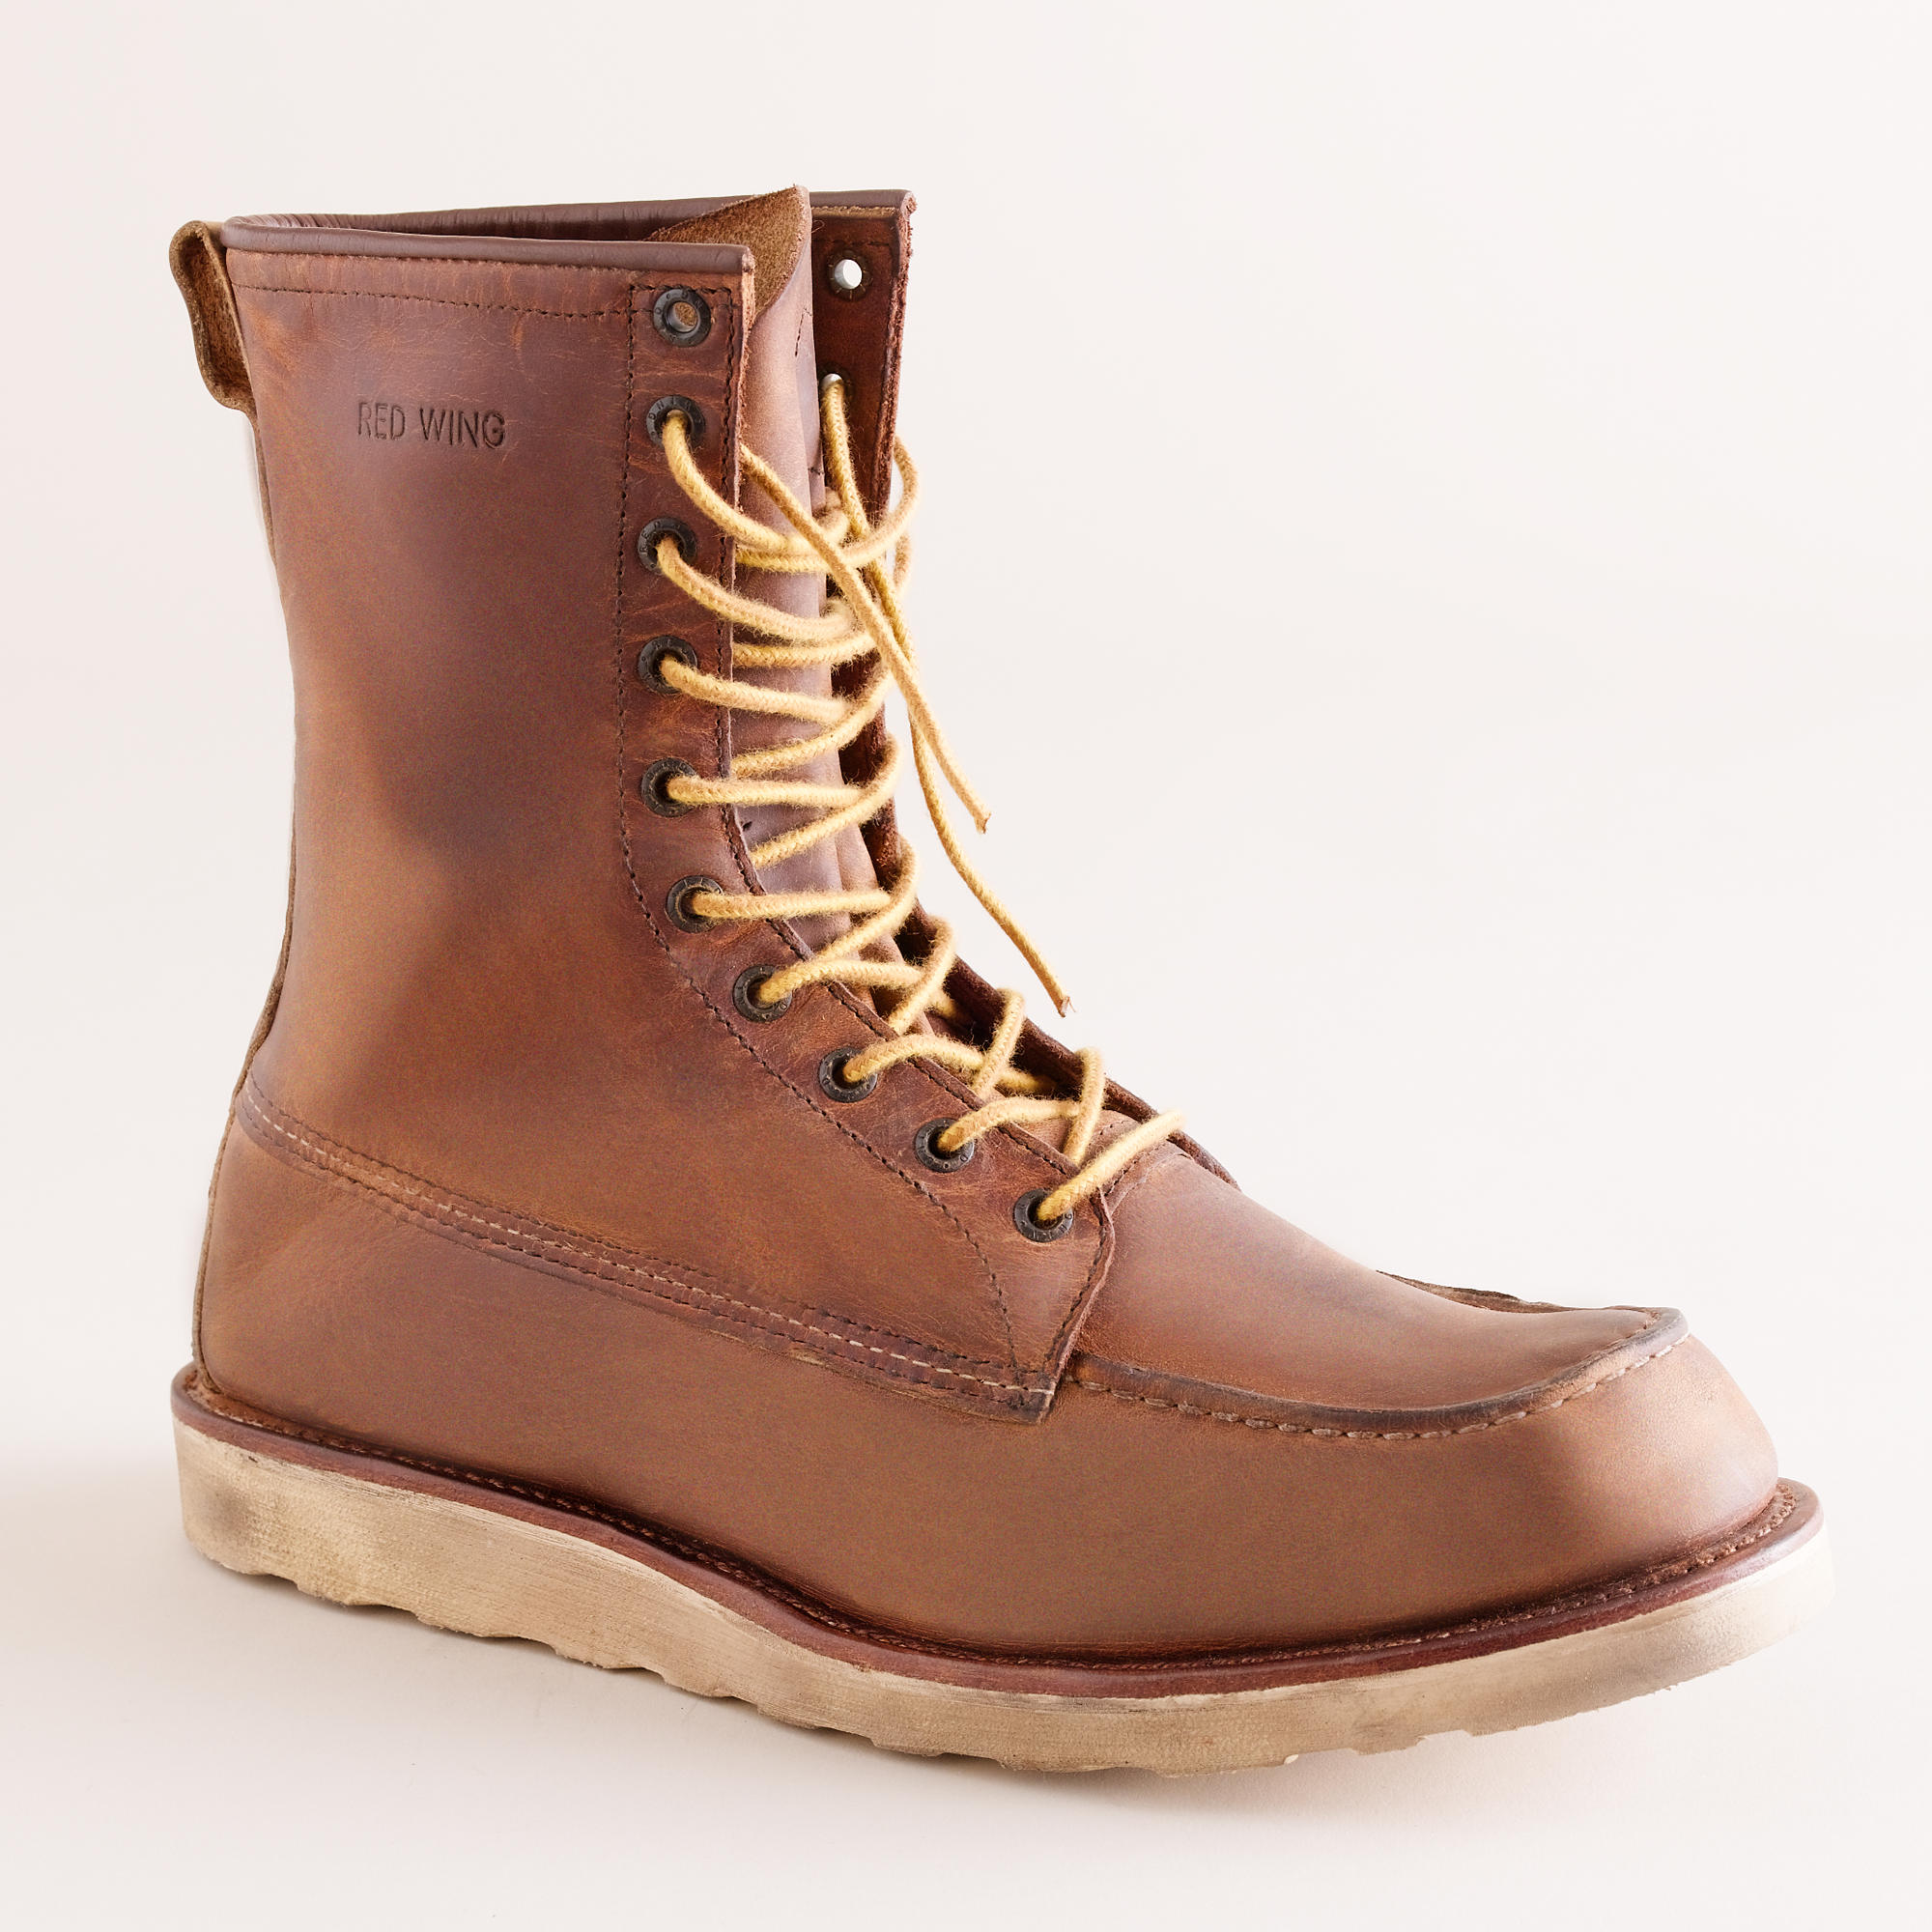 Red Wing classic Irish Setter boots : Men boots | J.Crew